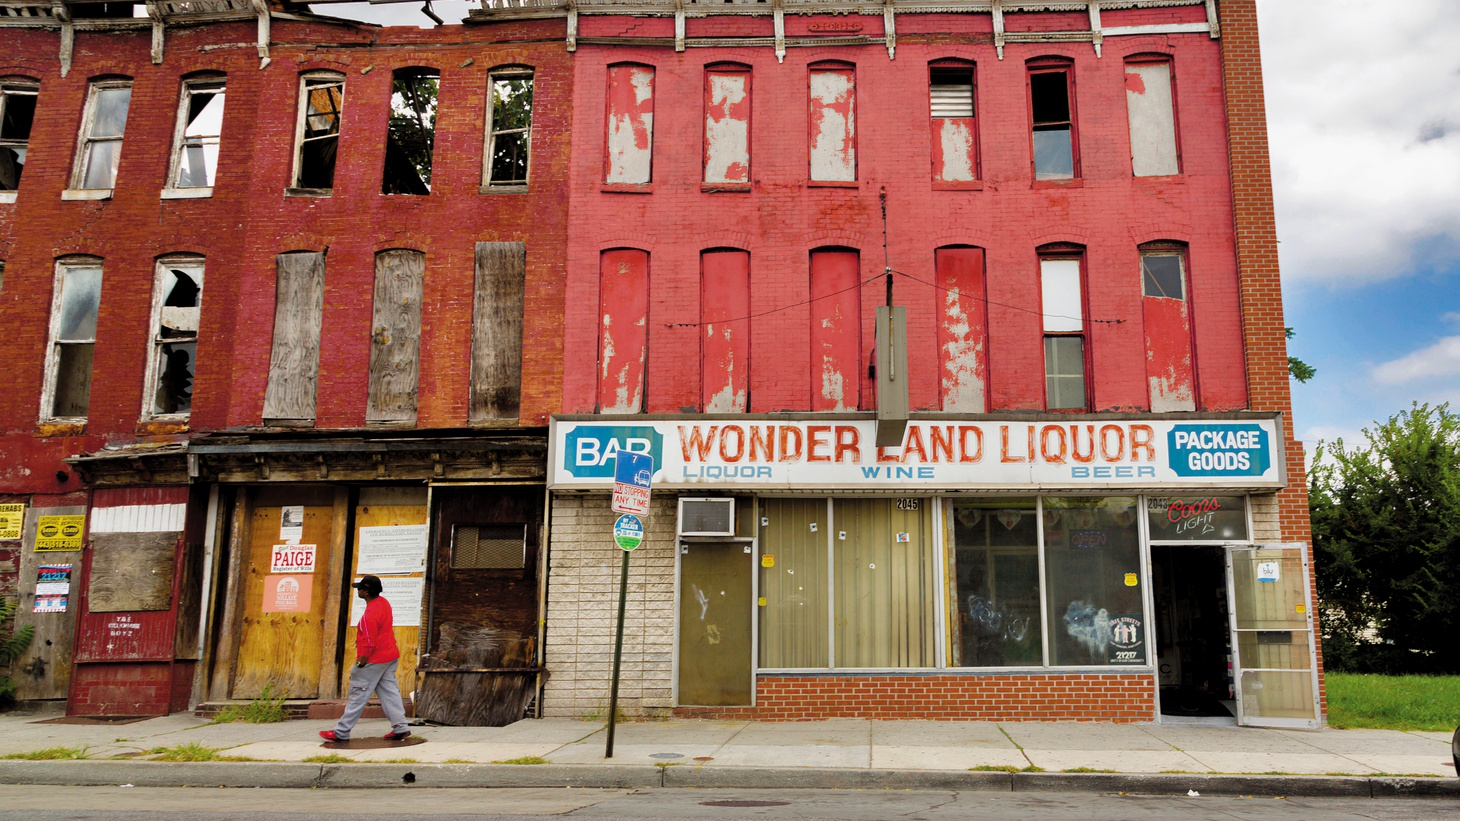 Wonderland Liquor is a former Green Book site in Baltimore, Maryland.